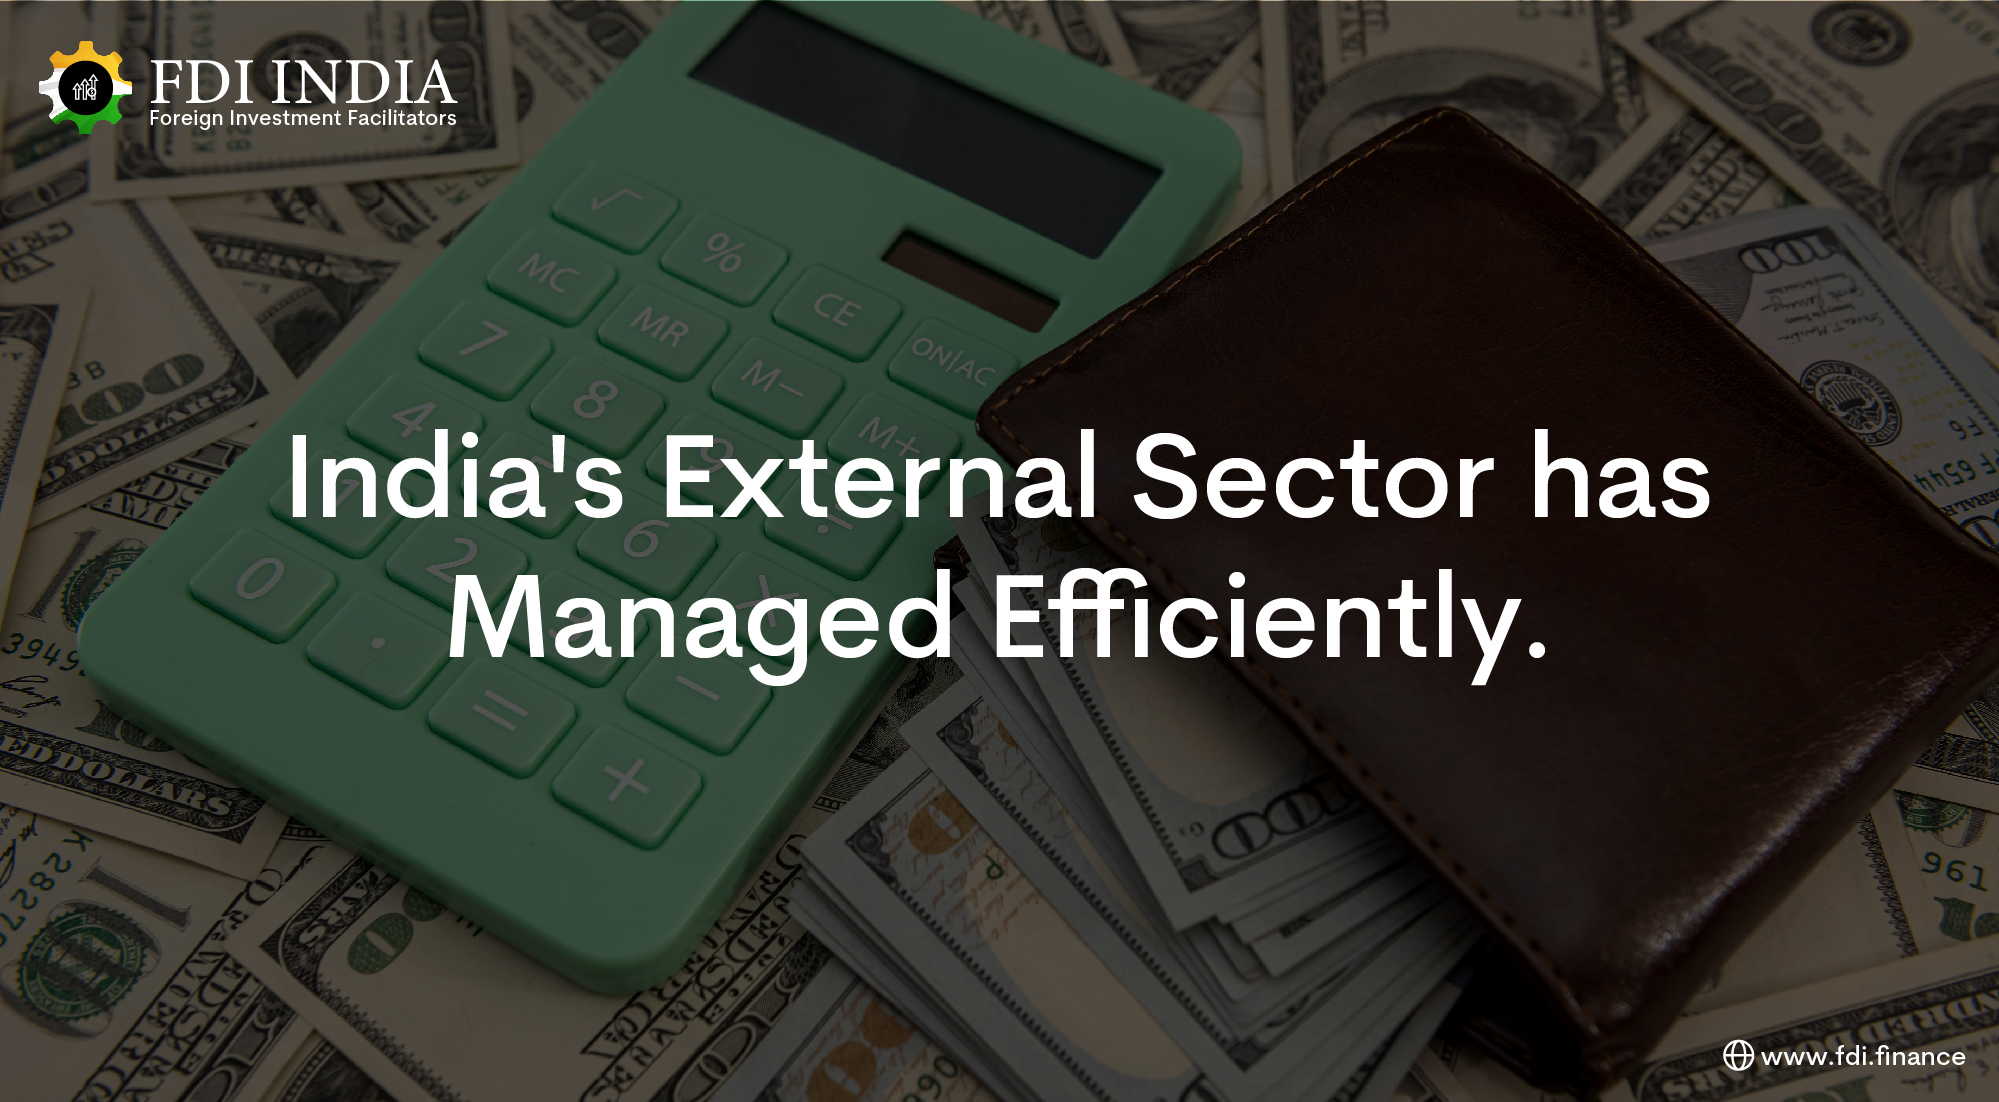 India's External Sector Has Managed Efficiently